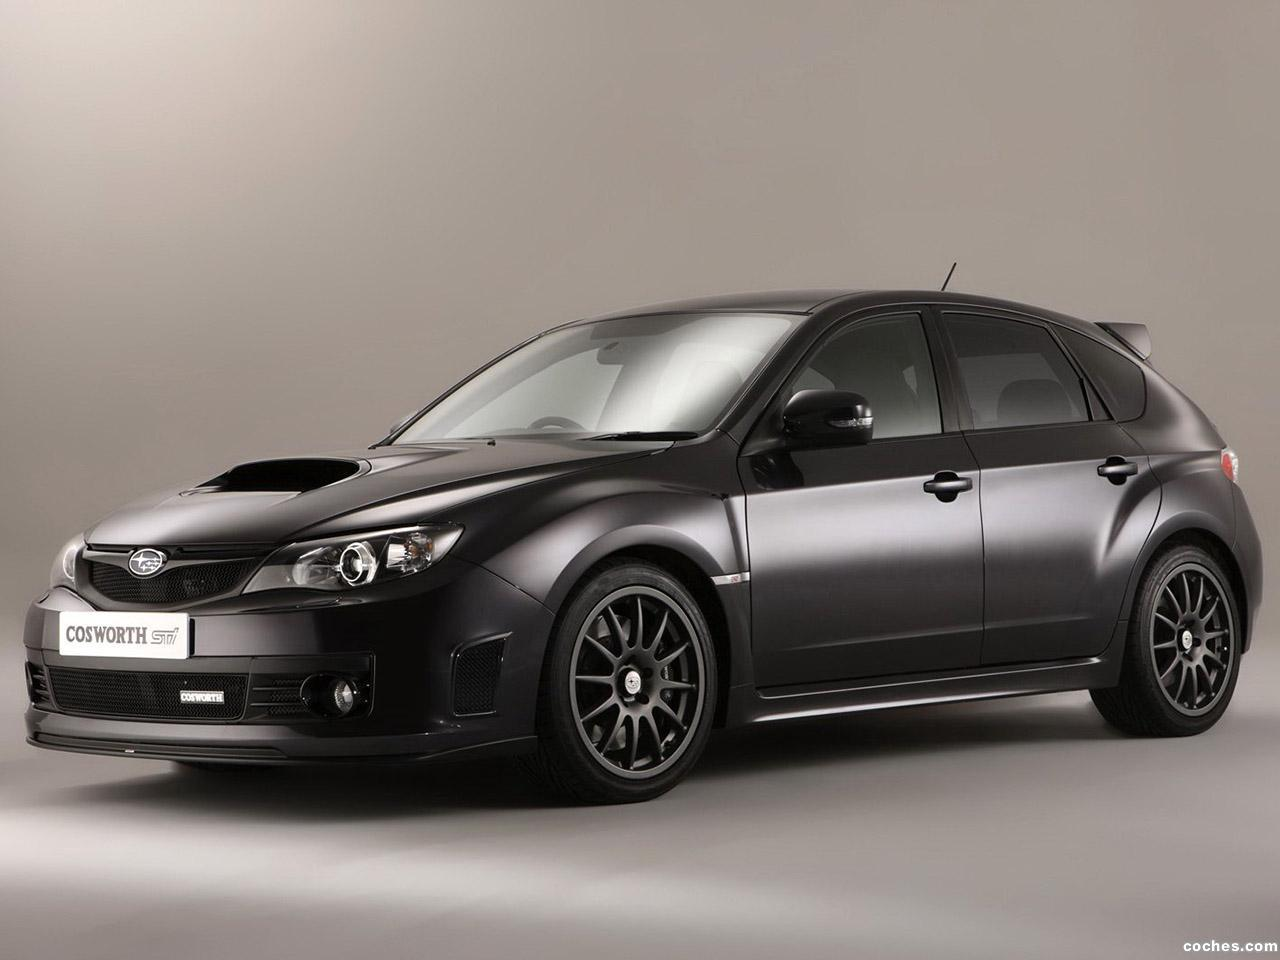 Foto 0 de Subaru Impreza Cosworth STi CS400 UK 2010